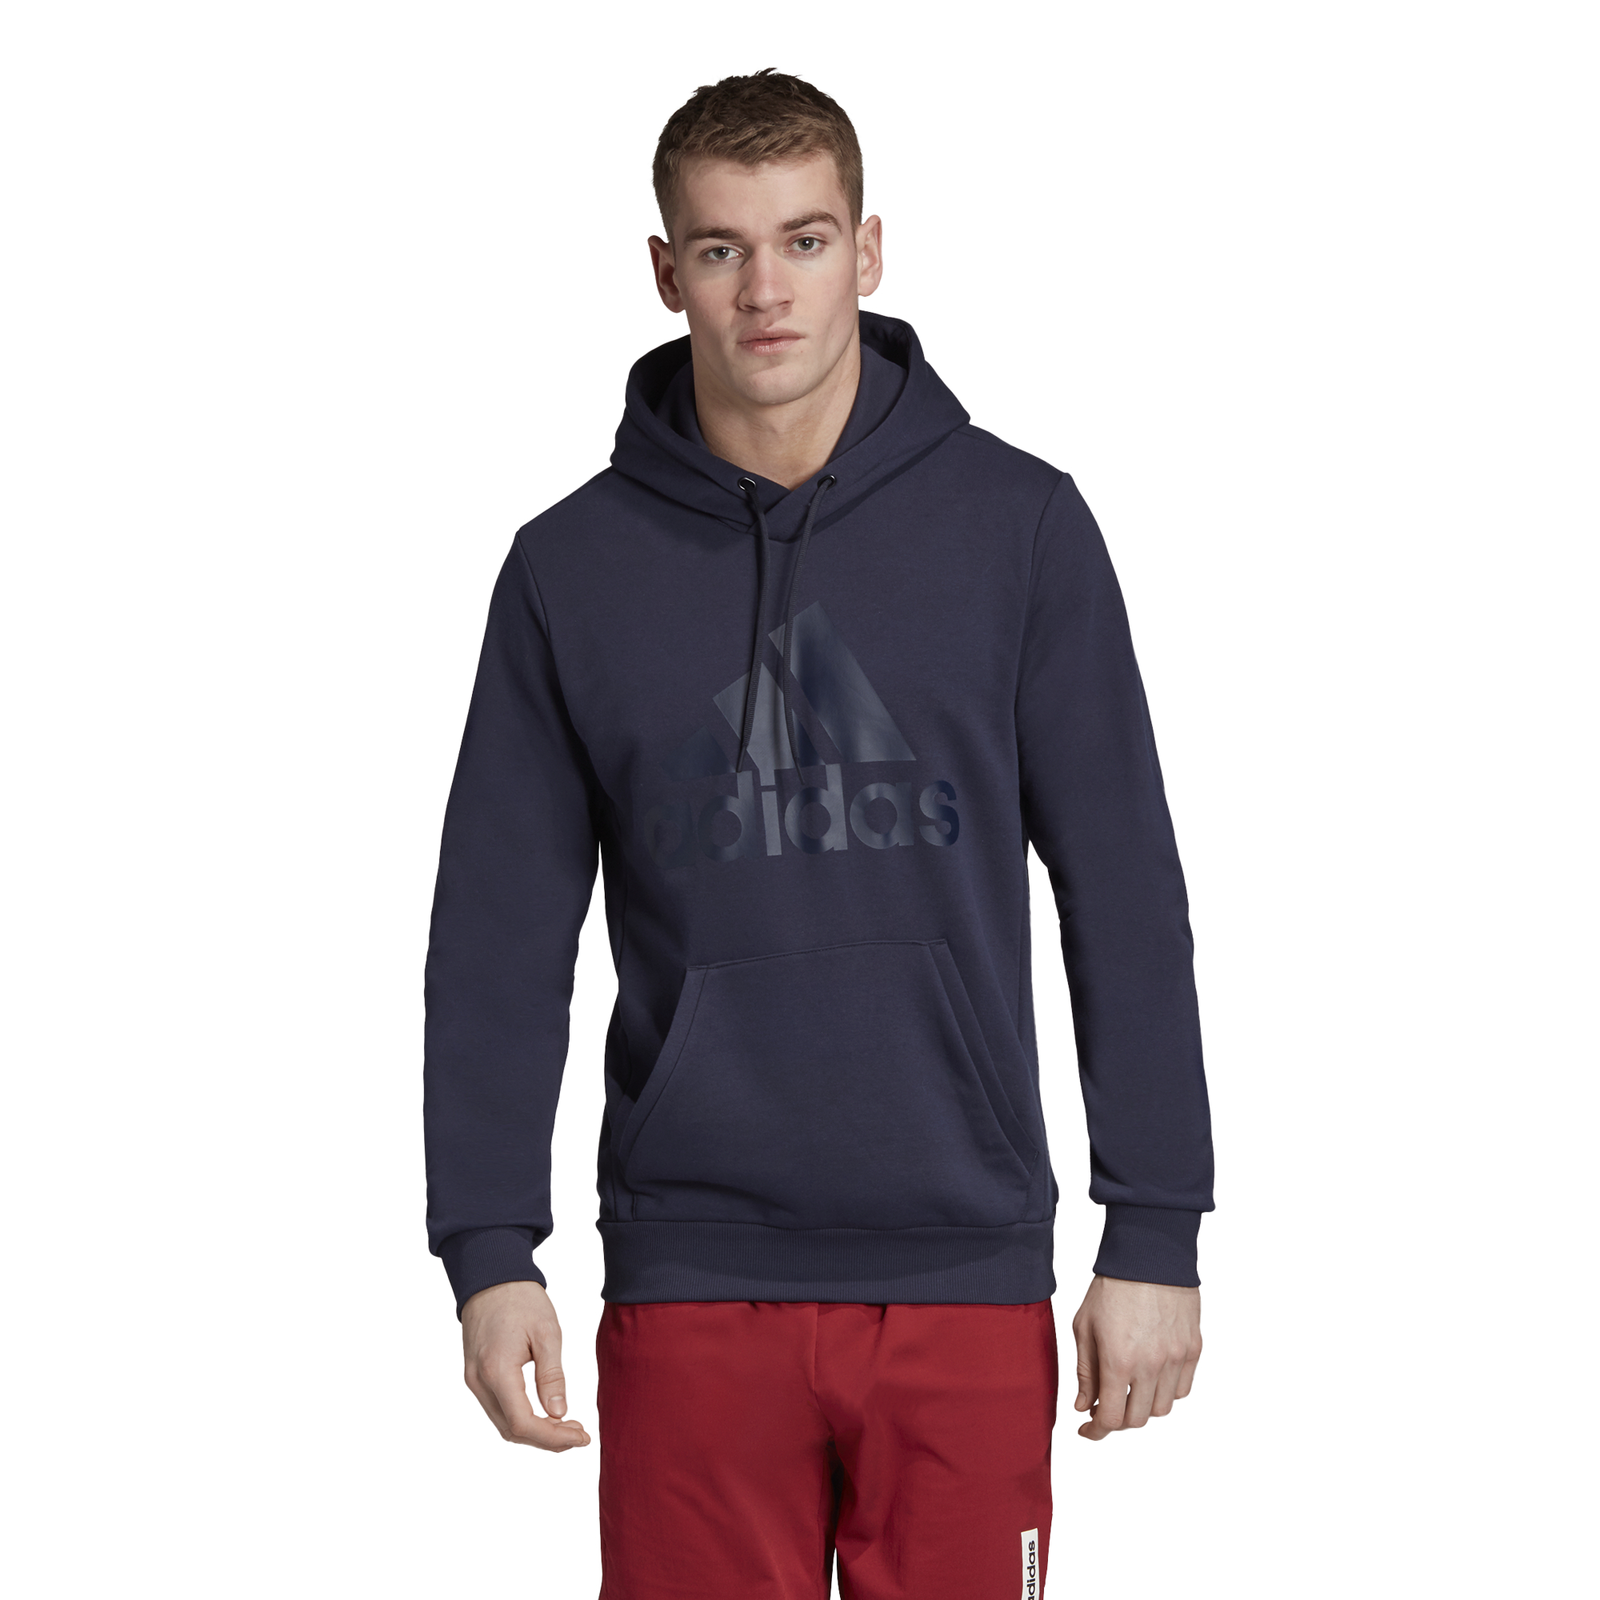 ADIDAS Performance Uomo con Cappuccio Felpa must have of Sport Hoodie Blu